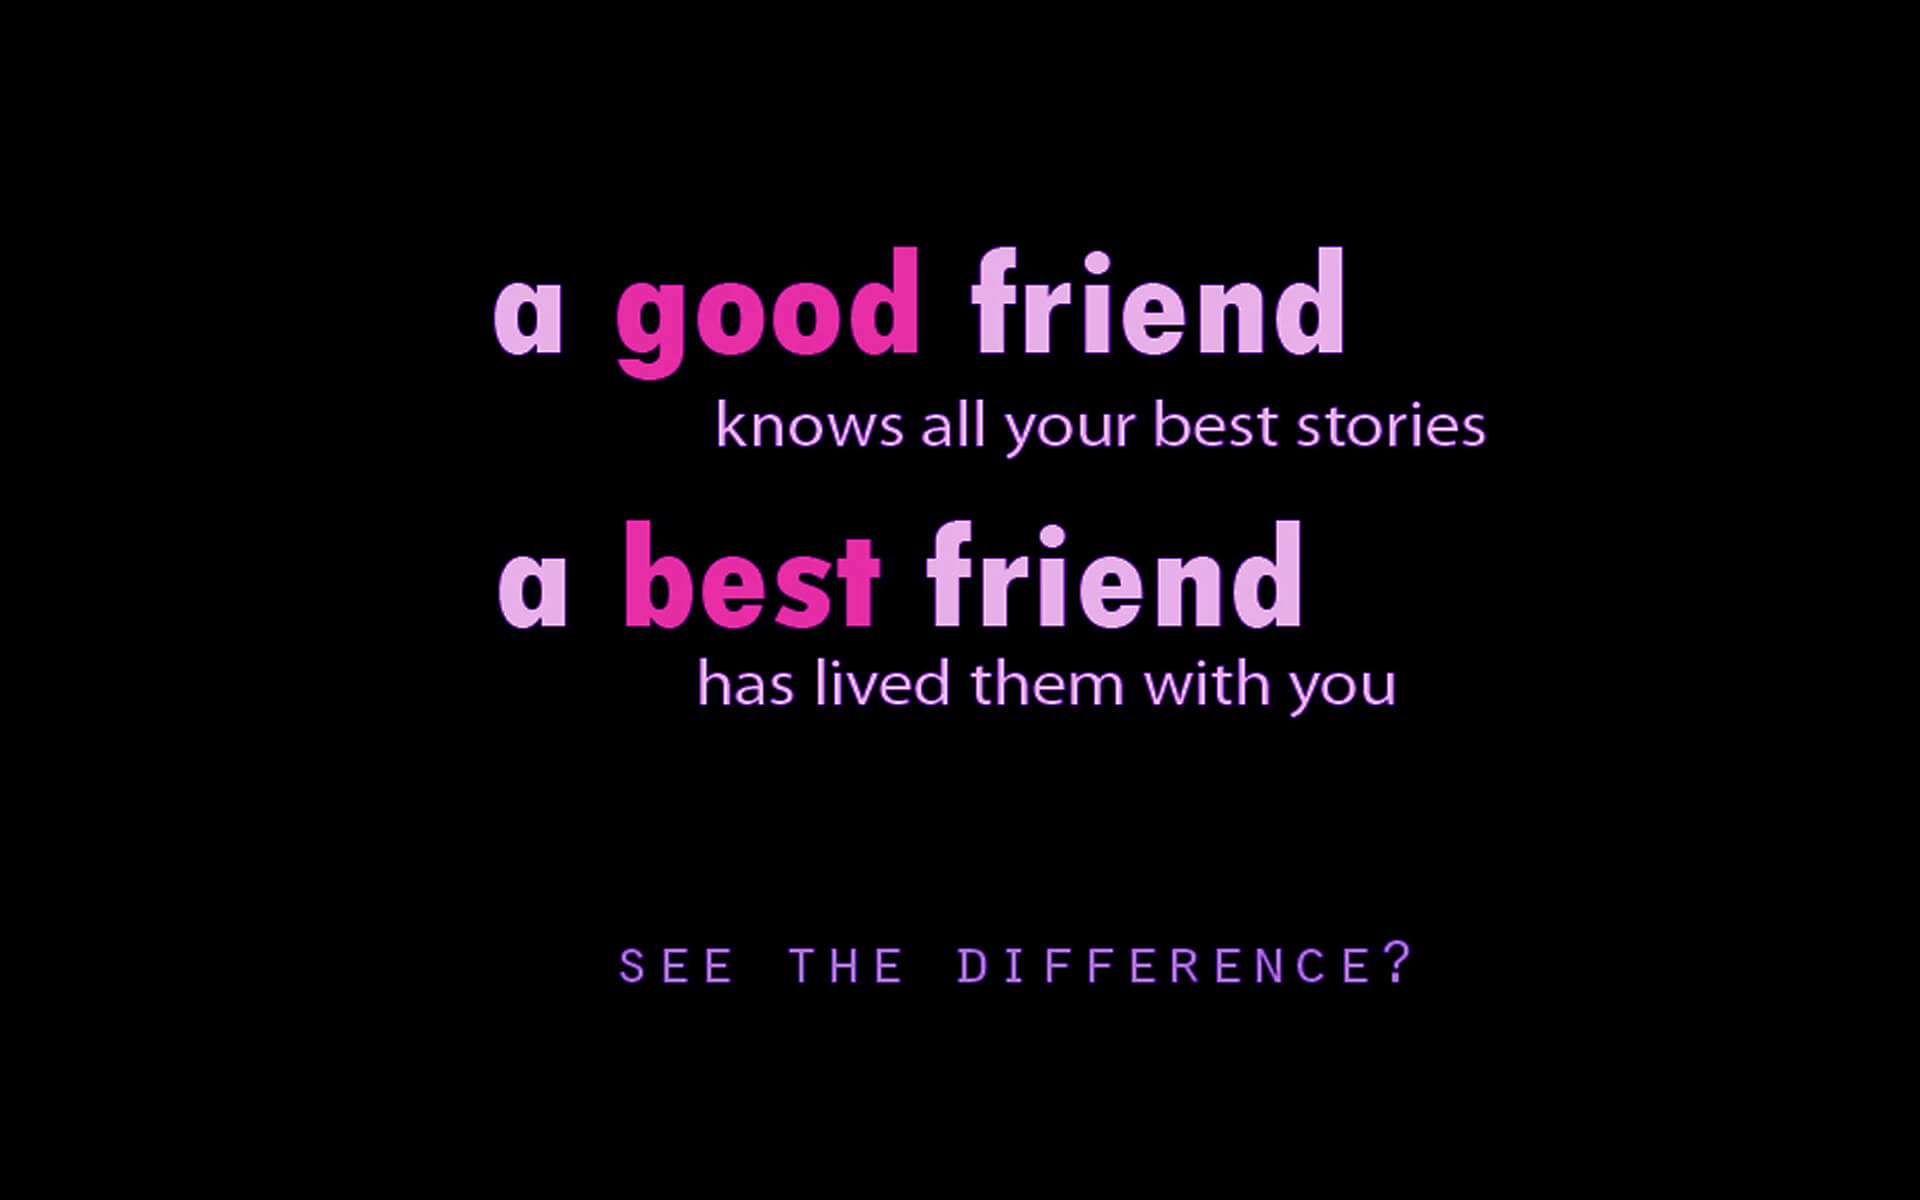 happy friendship day friends nice quotes text image